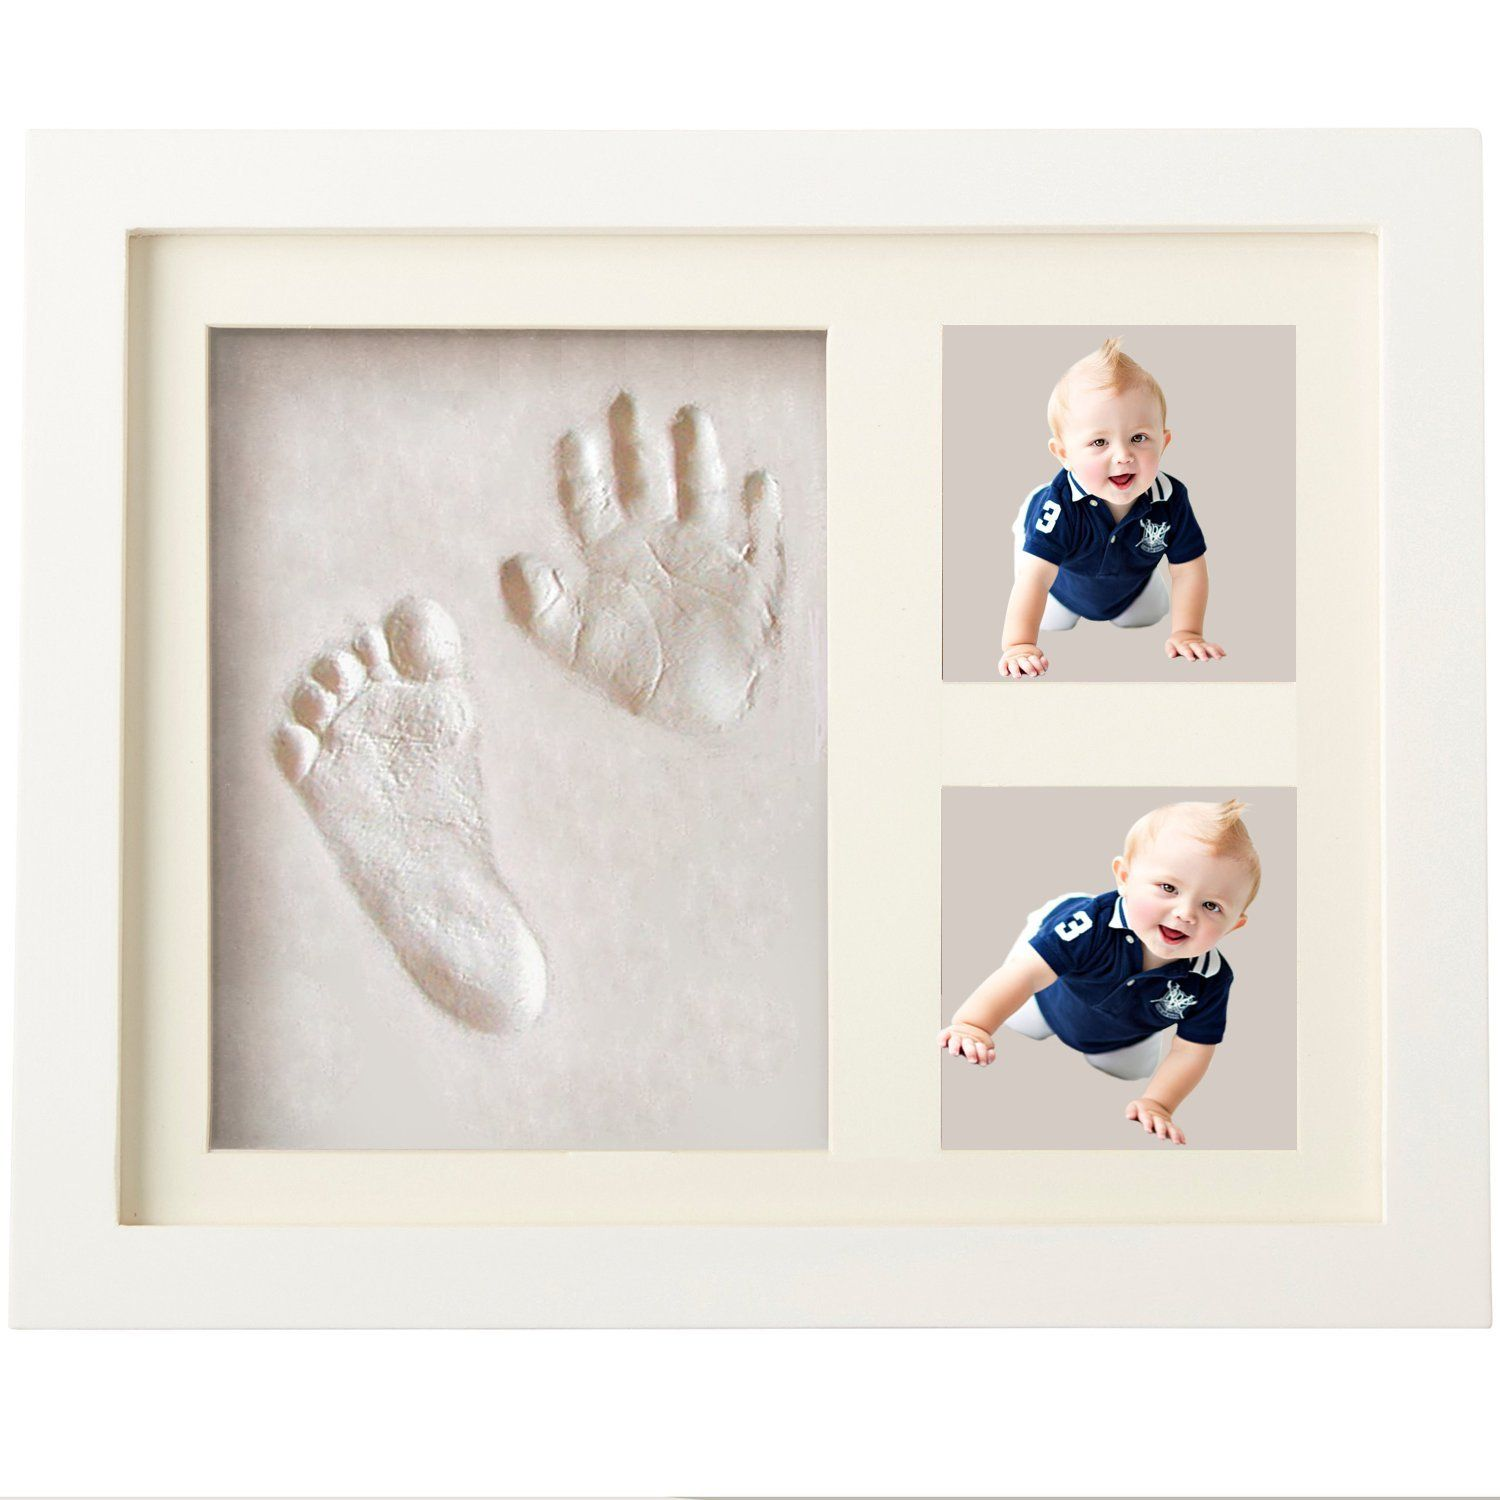 Framed Personalised Hand Print Footprint Kit Baby Shower Fathers Day Gift Idea